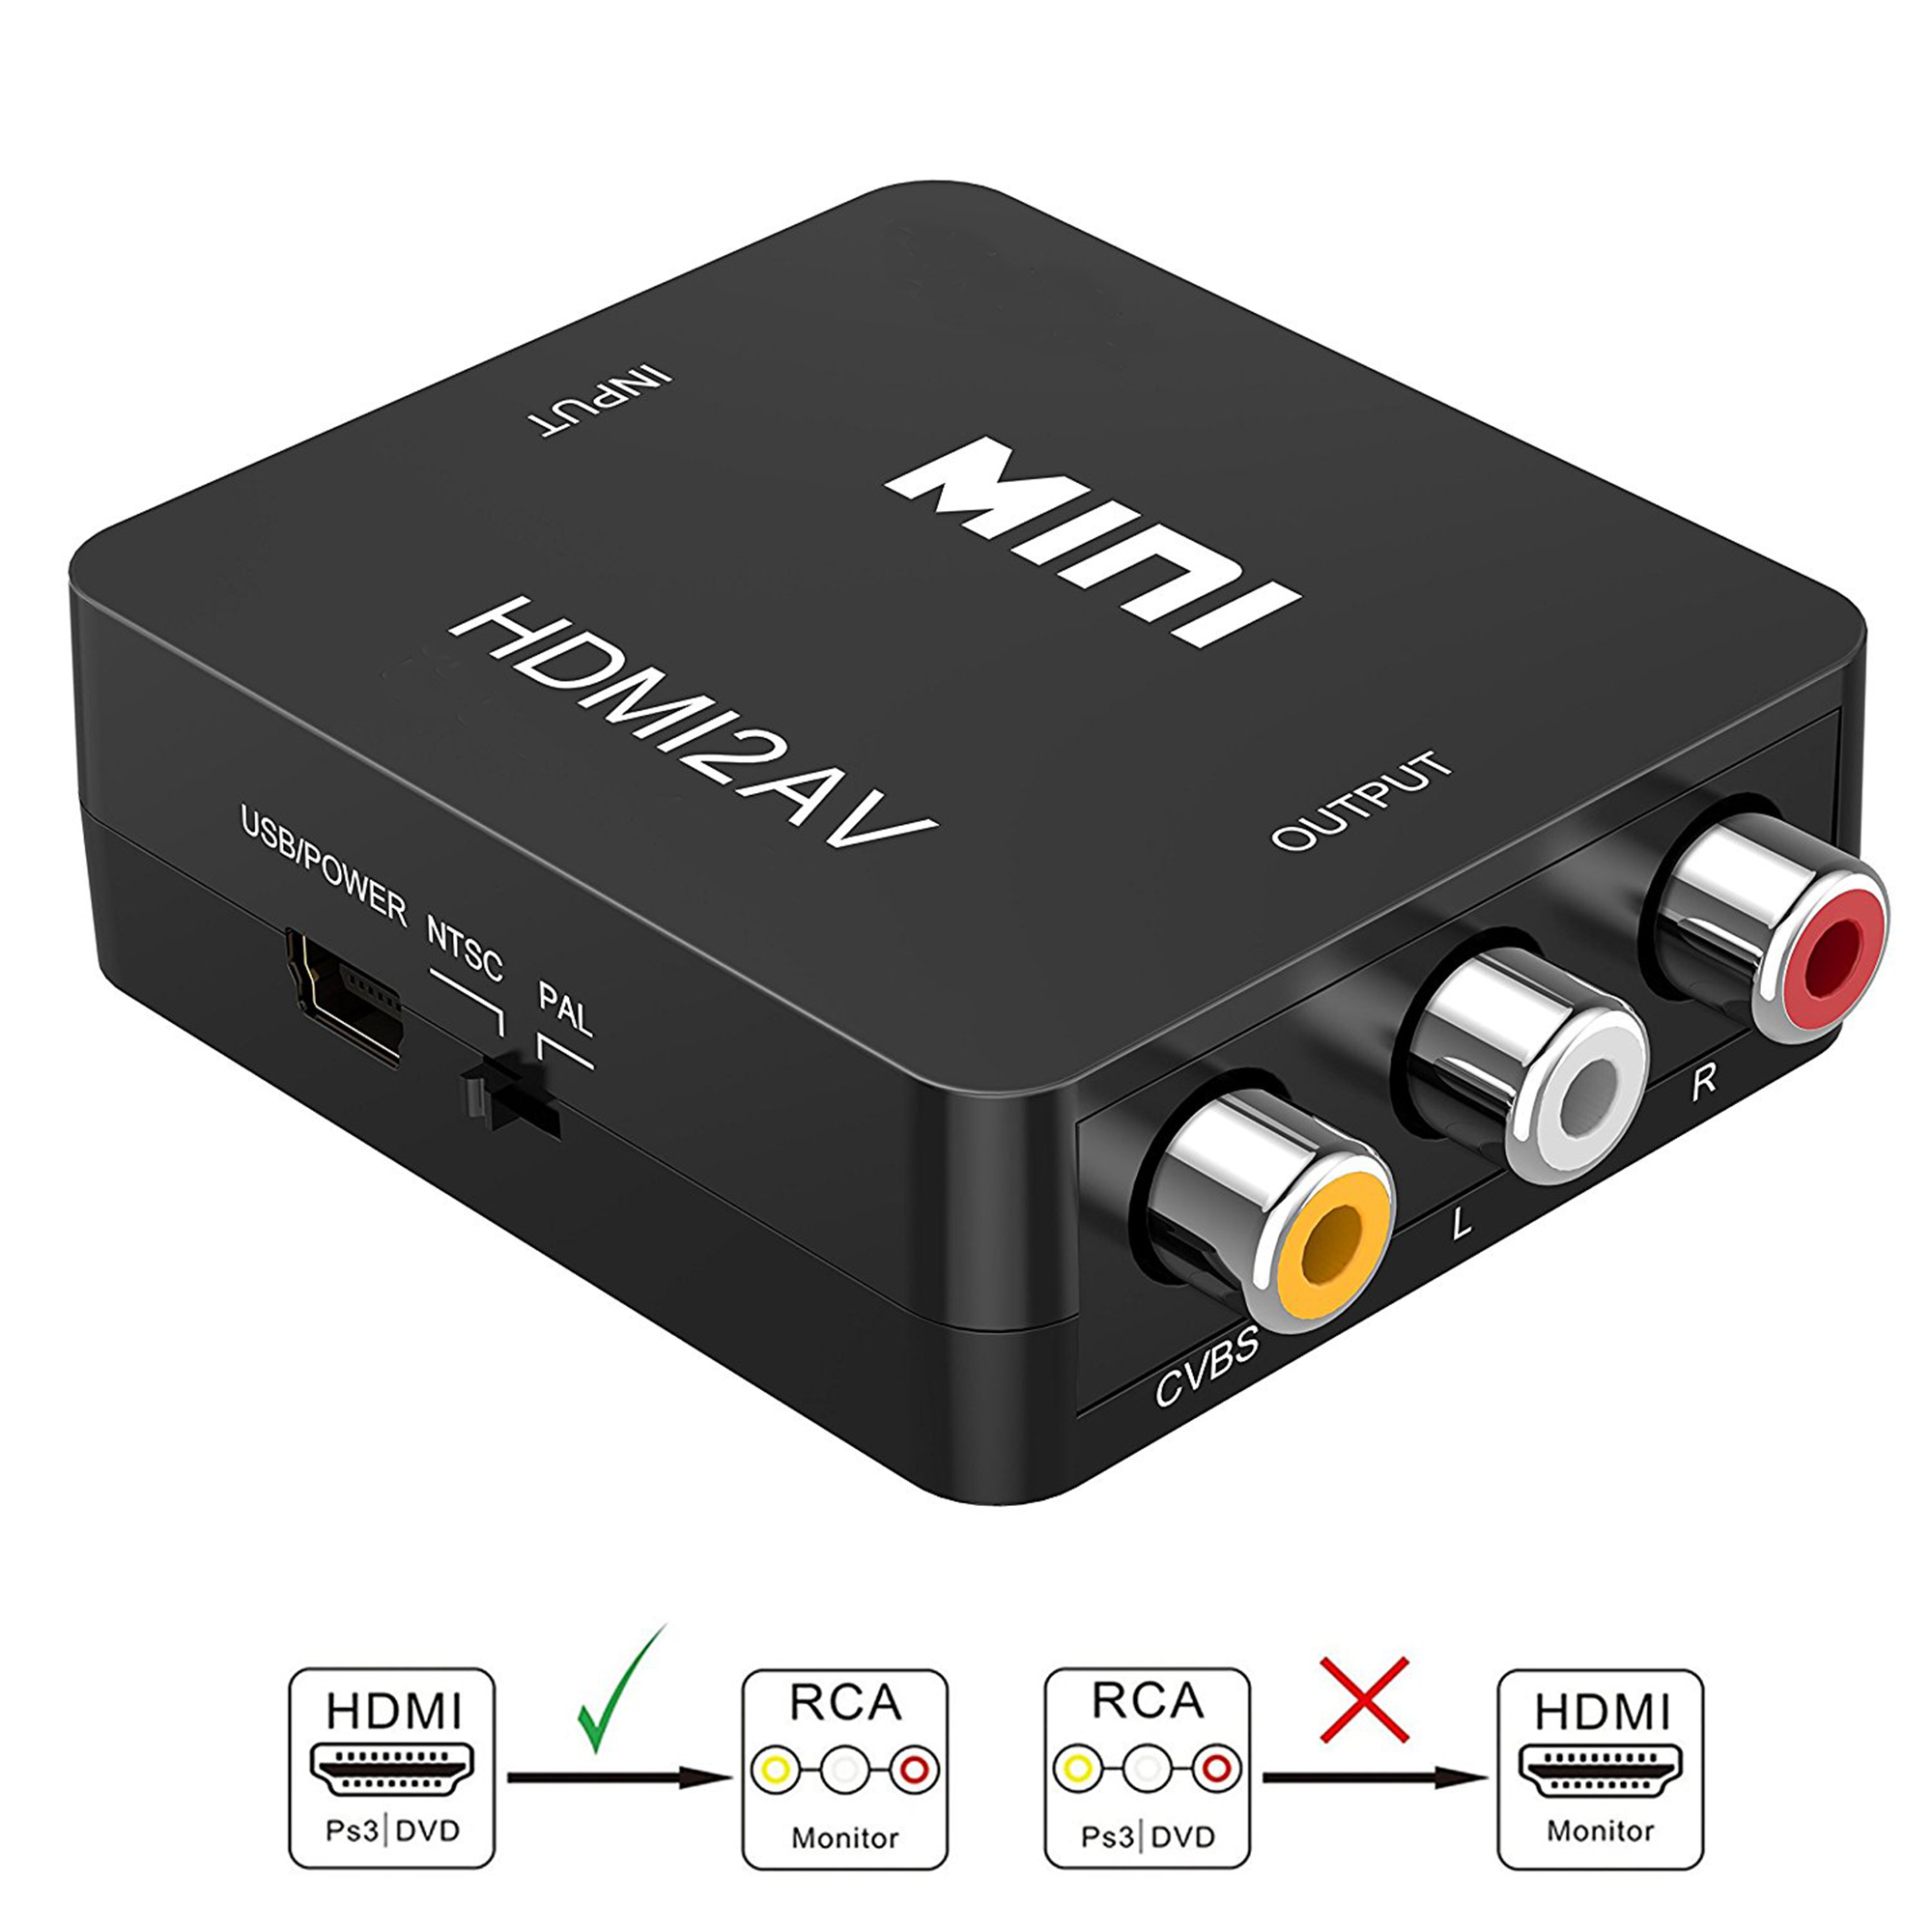 HDMI to RCA Converter, LittleMax 1080P HDMI to 3RCA CVBS AV Composite Video Audio Converter Adapter Supports PAL/NTSC with USB Charge Cable for PC Laptop HDTV DVD, Black